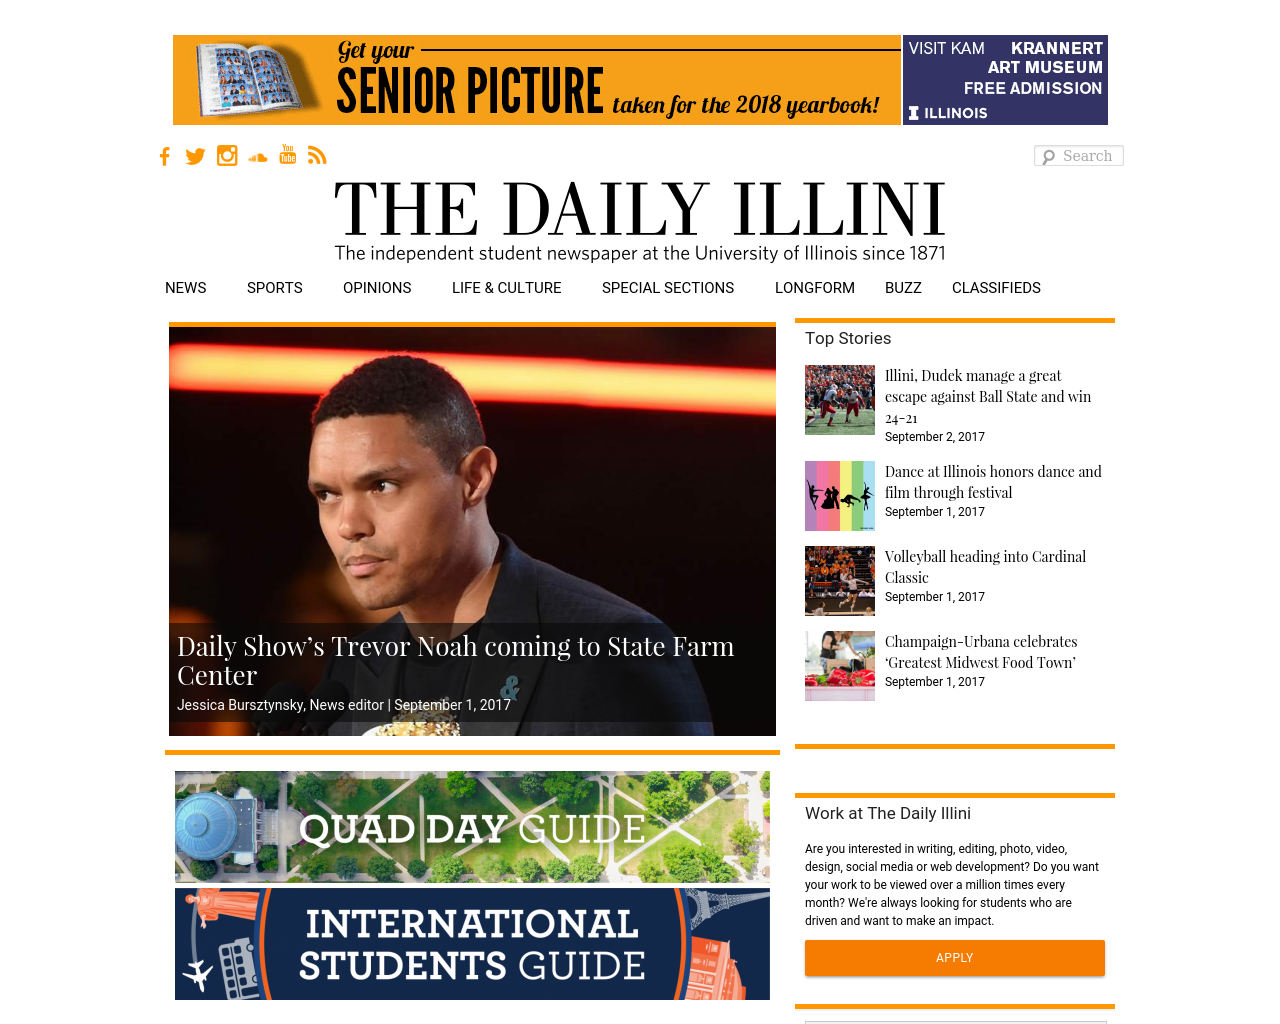 THE-DAILY-ILLINI-Advertising-Reviews-Pricing